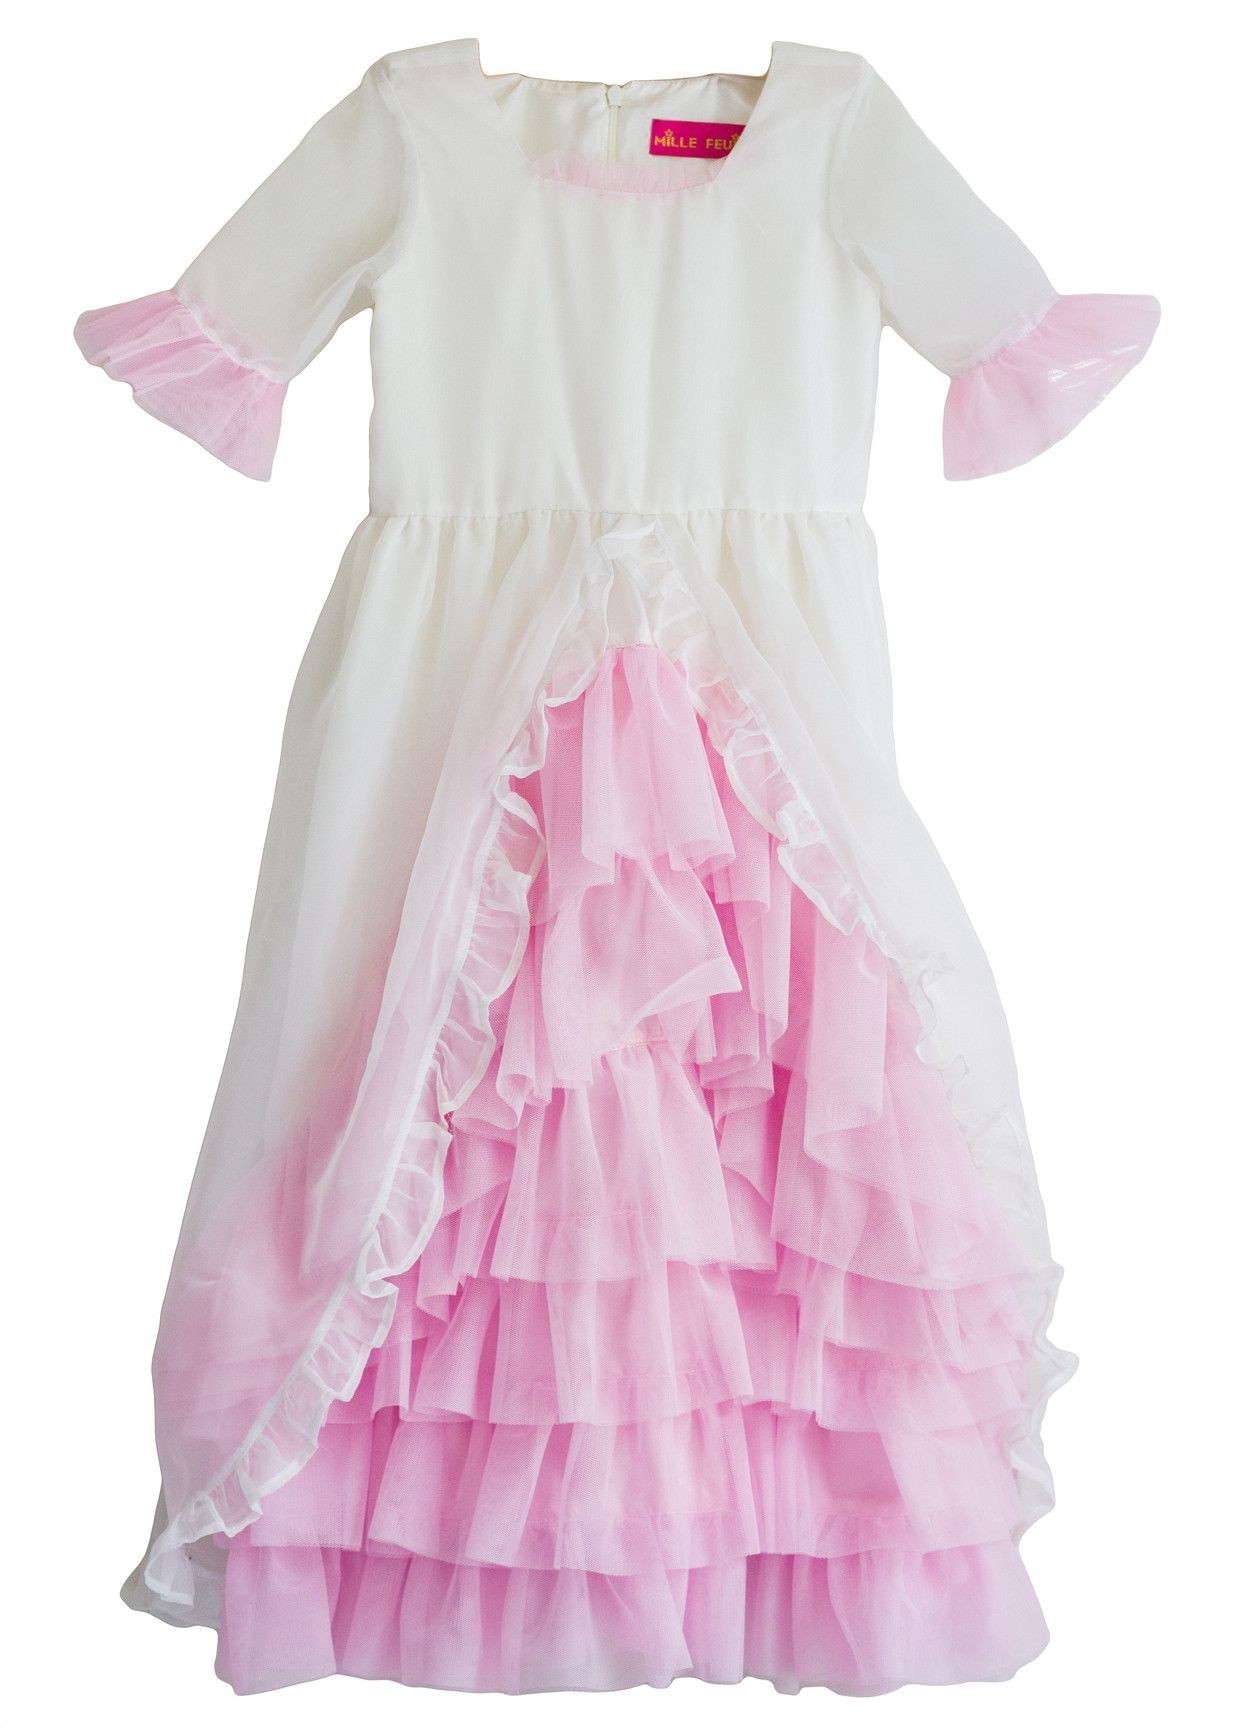 Madame Royale Vintage Style Flower Girl Dress Ivory And Pink All